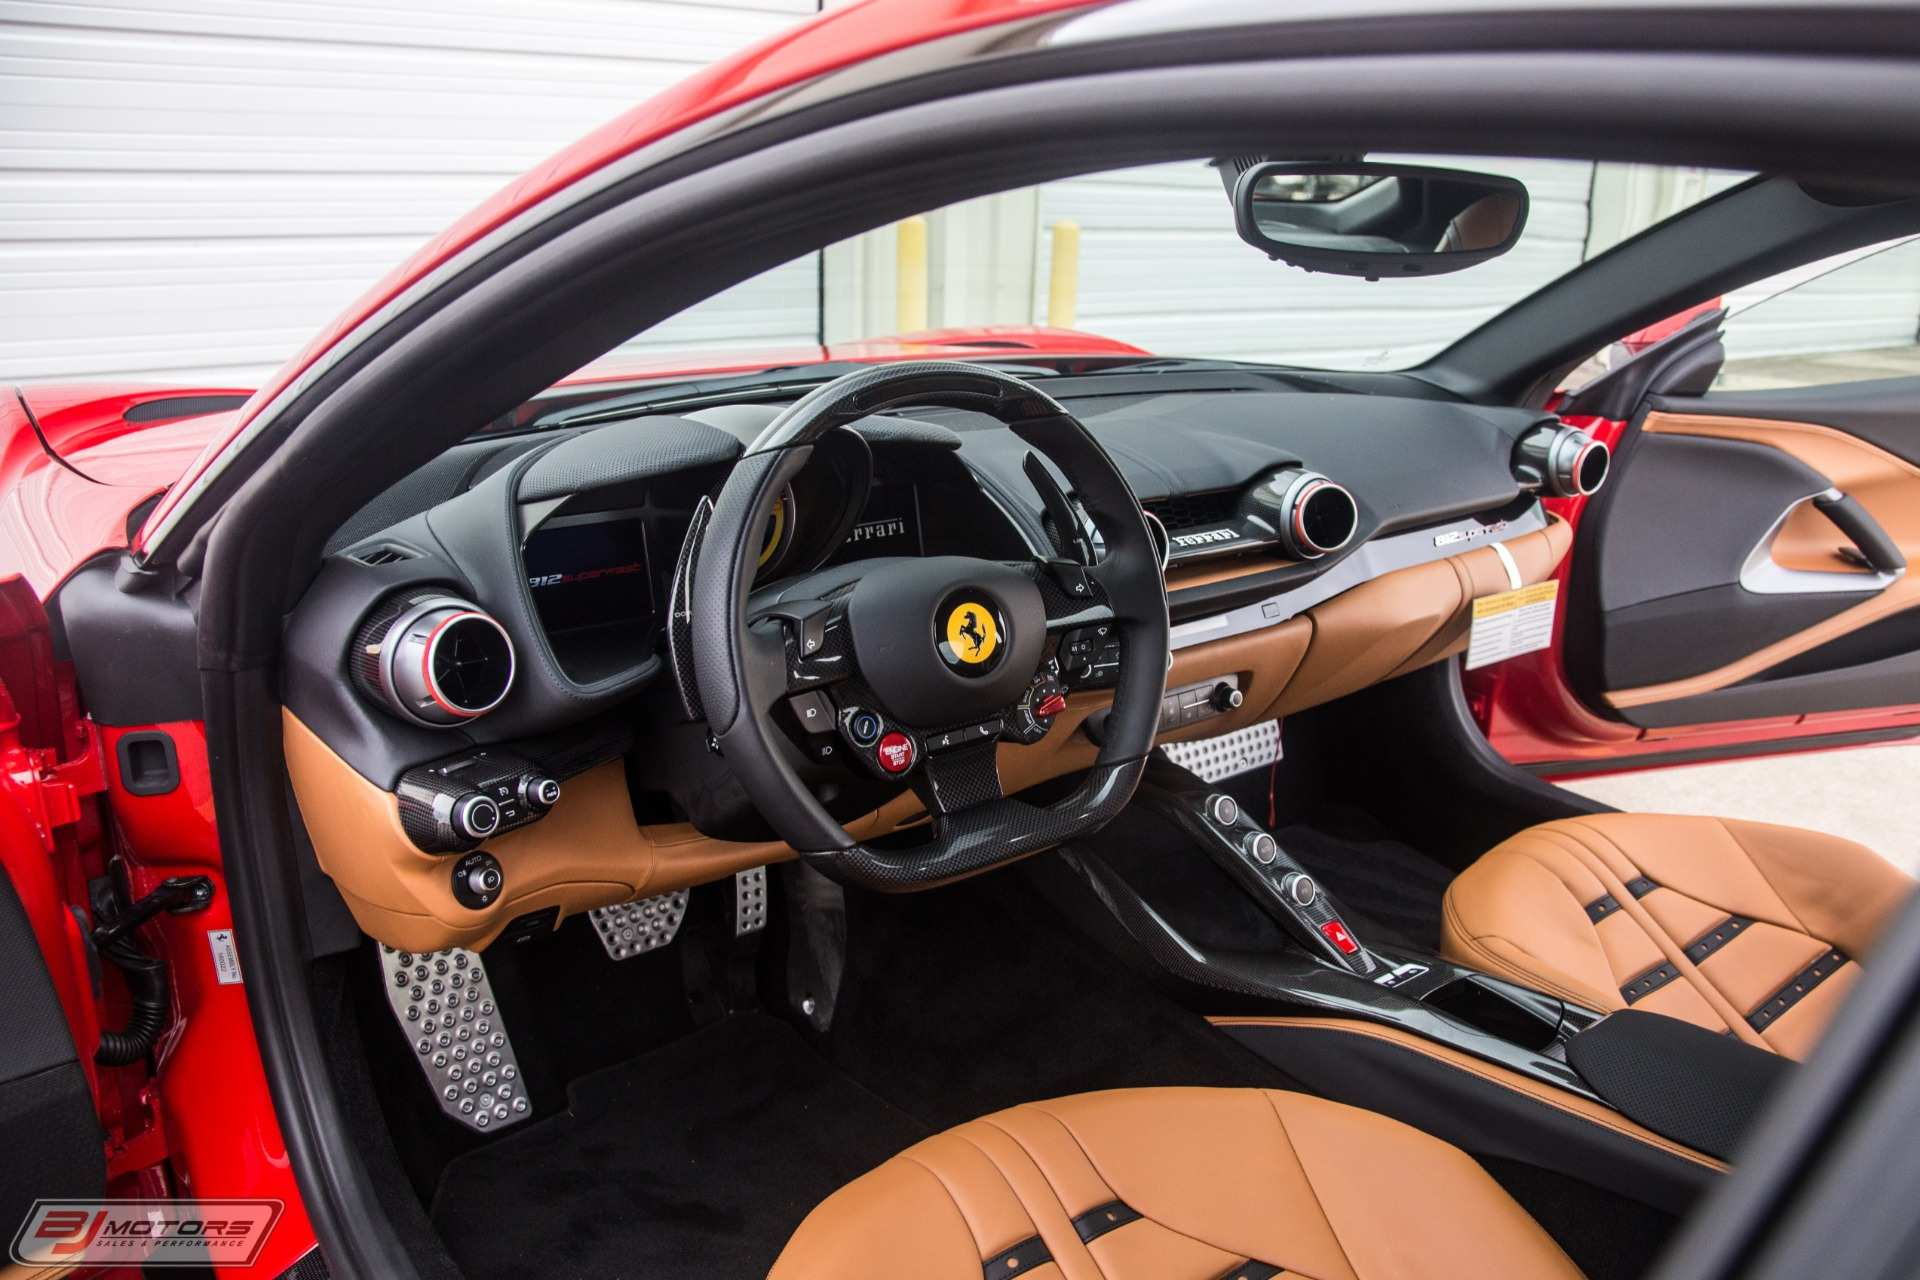 33 Concept of 2019 Ferrari Superfast Interior Pricing with 2019 Ferrari Superfast Interior